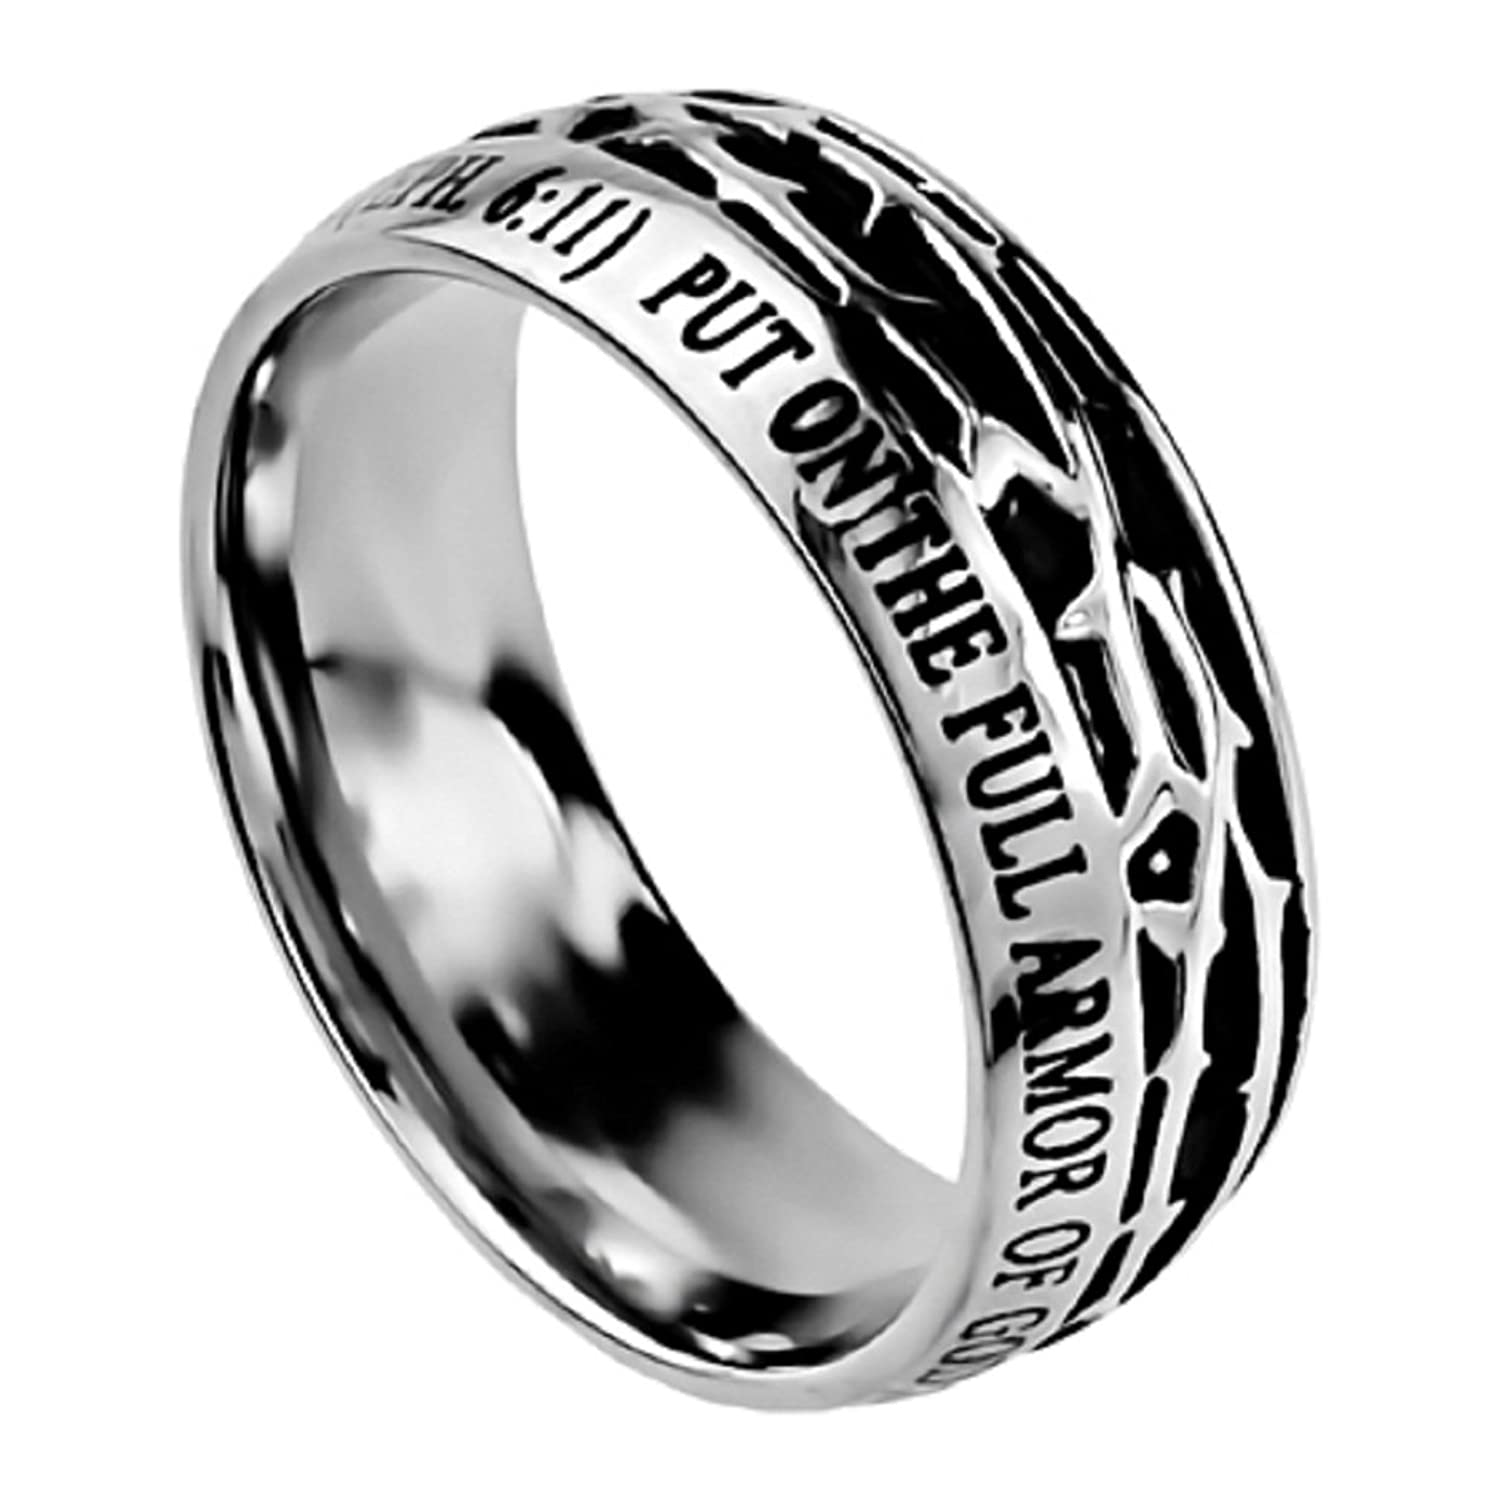 Ephesians 6 11 Crown of Thorns Ring Stainless Steel Christian